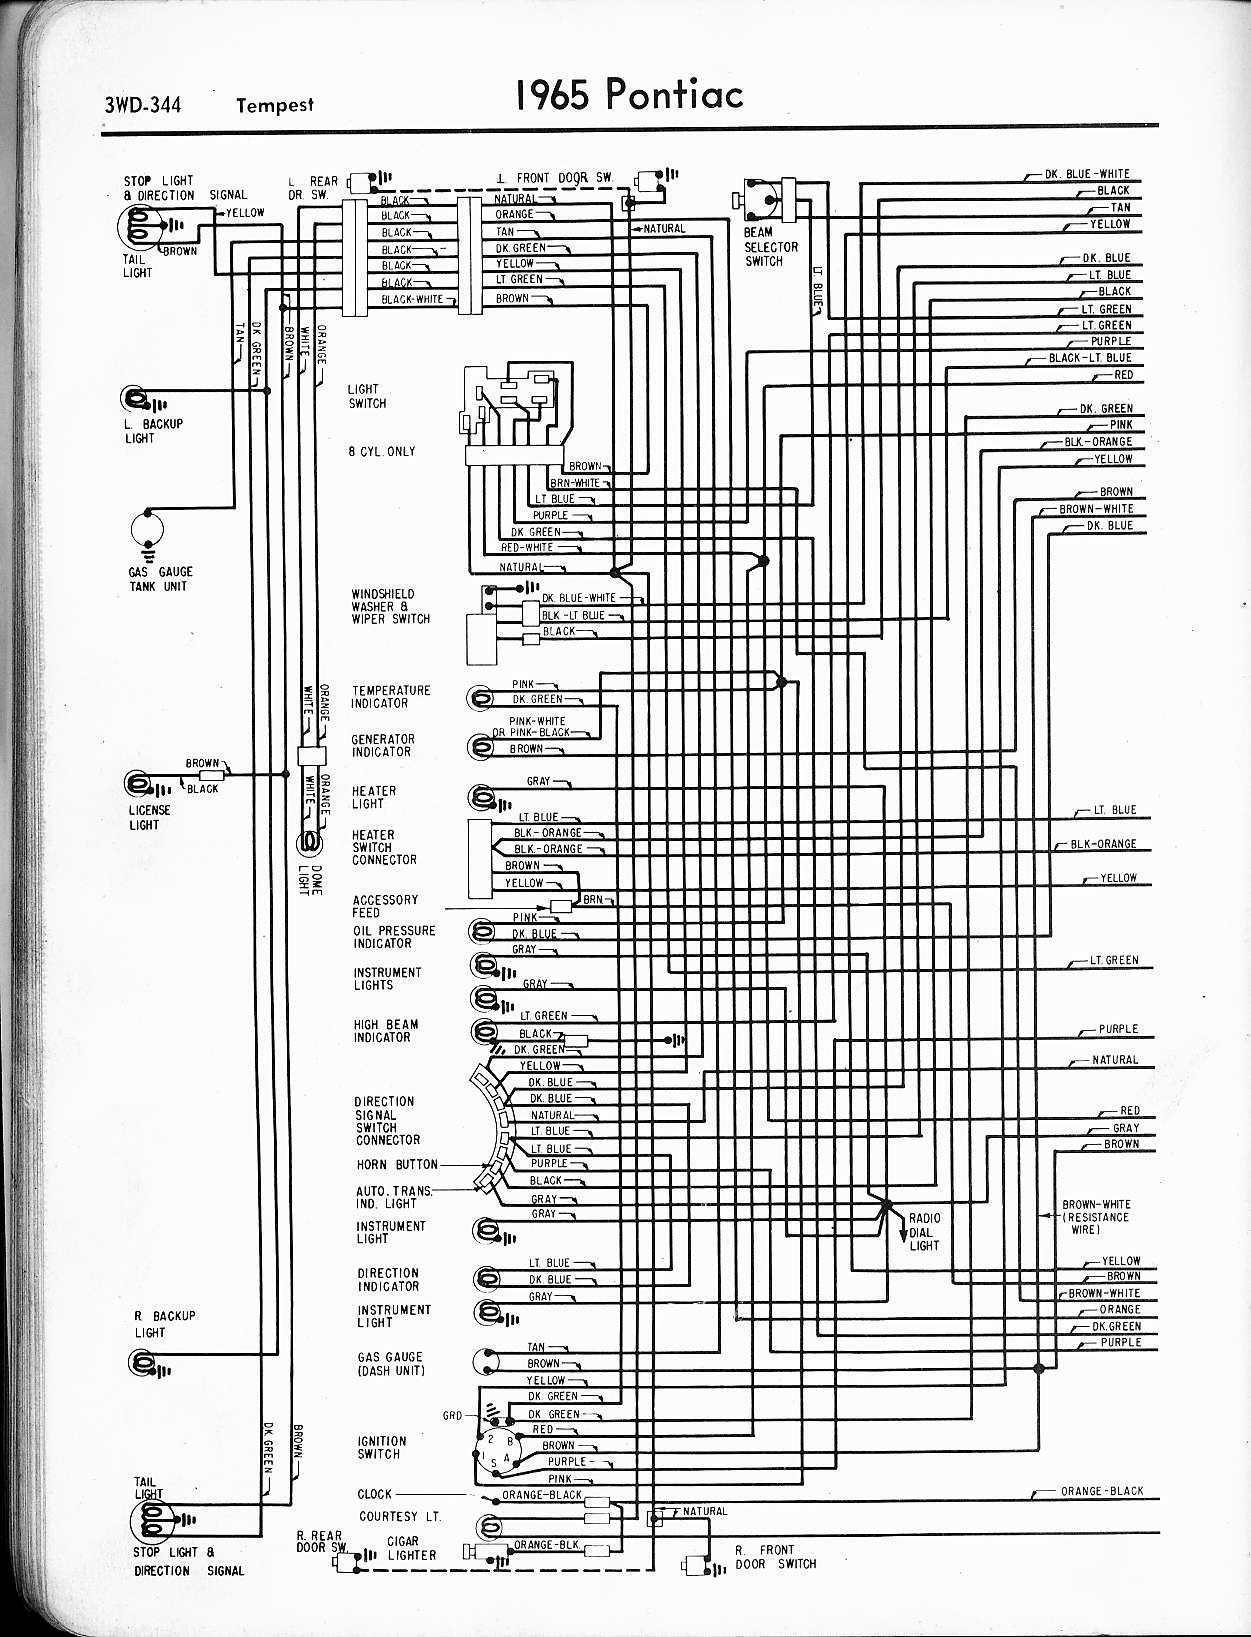 Wiring Diagram Pontiac 1966